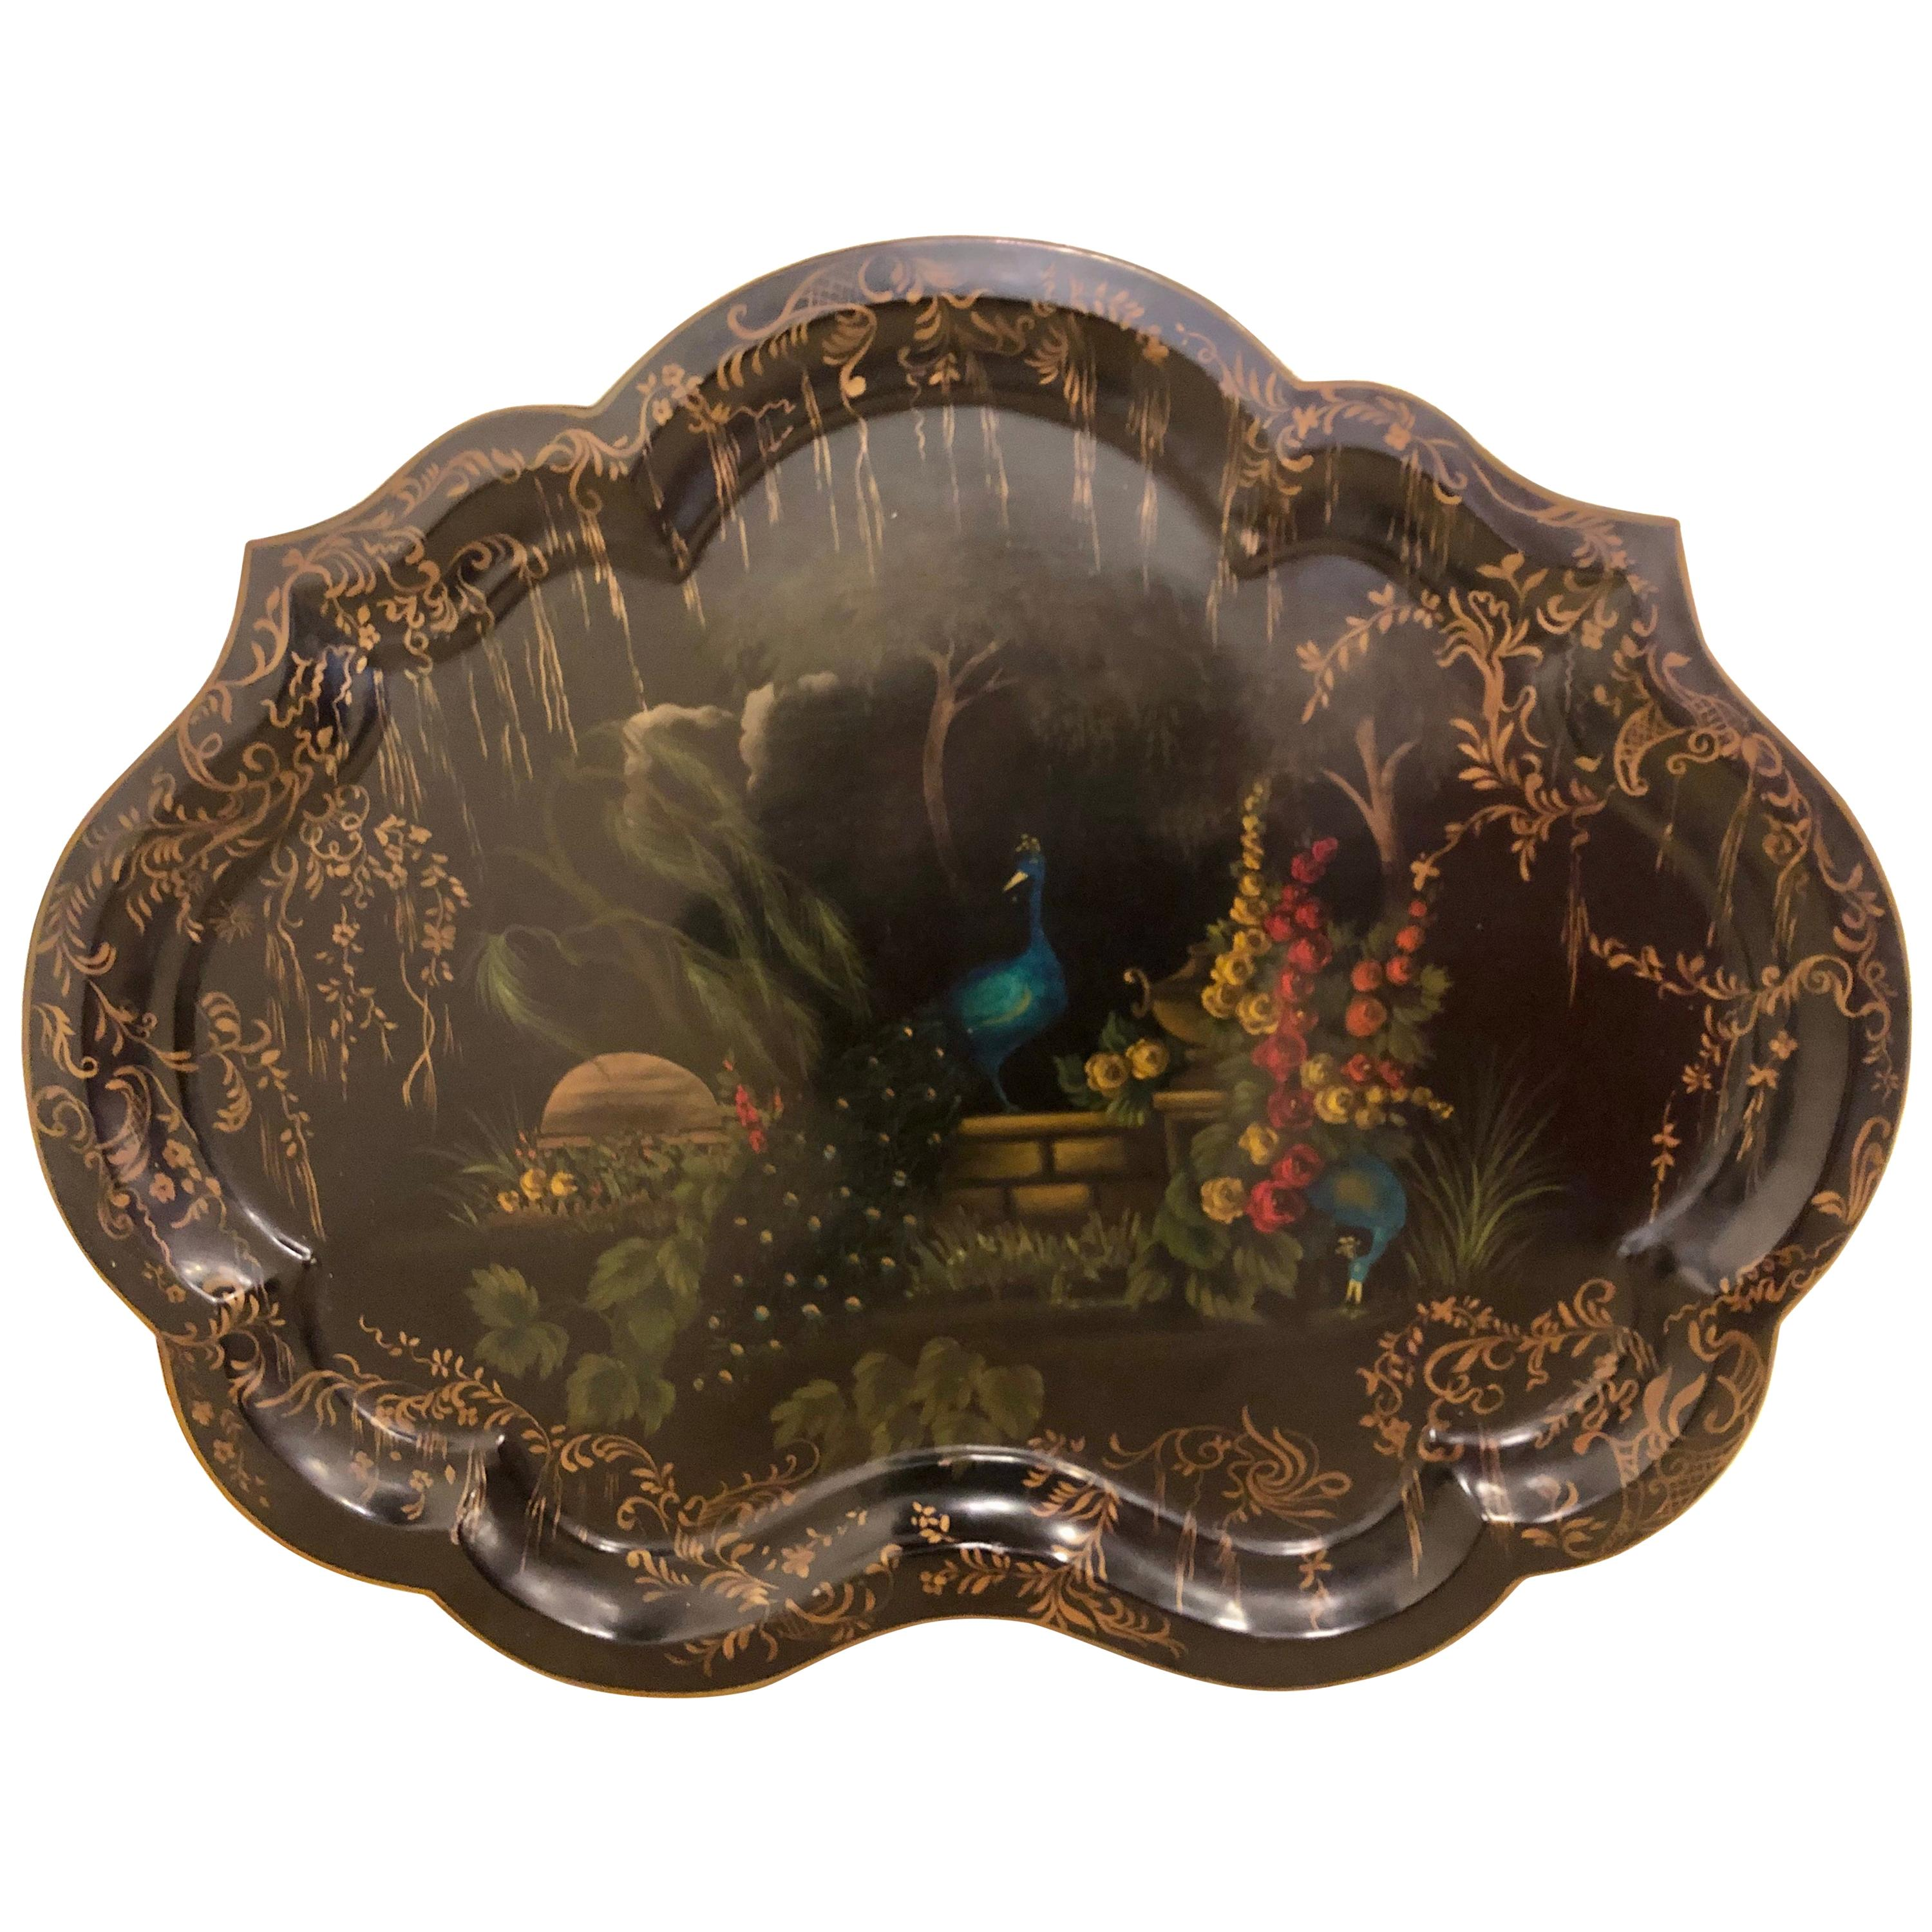 19th Century Hand Painted Tole Serving Tray, Platter